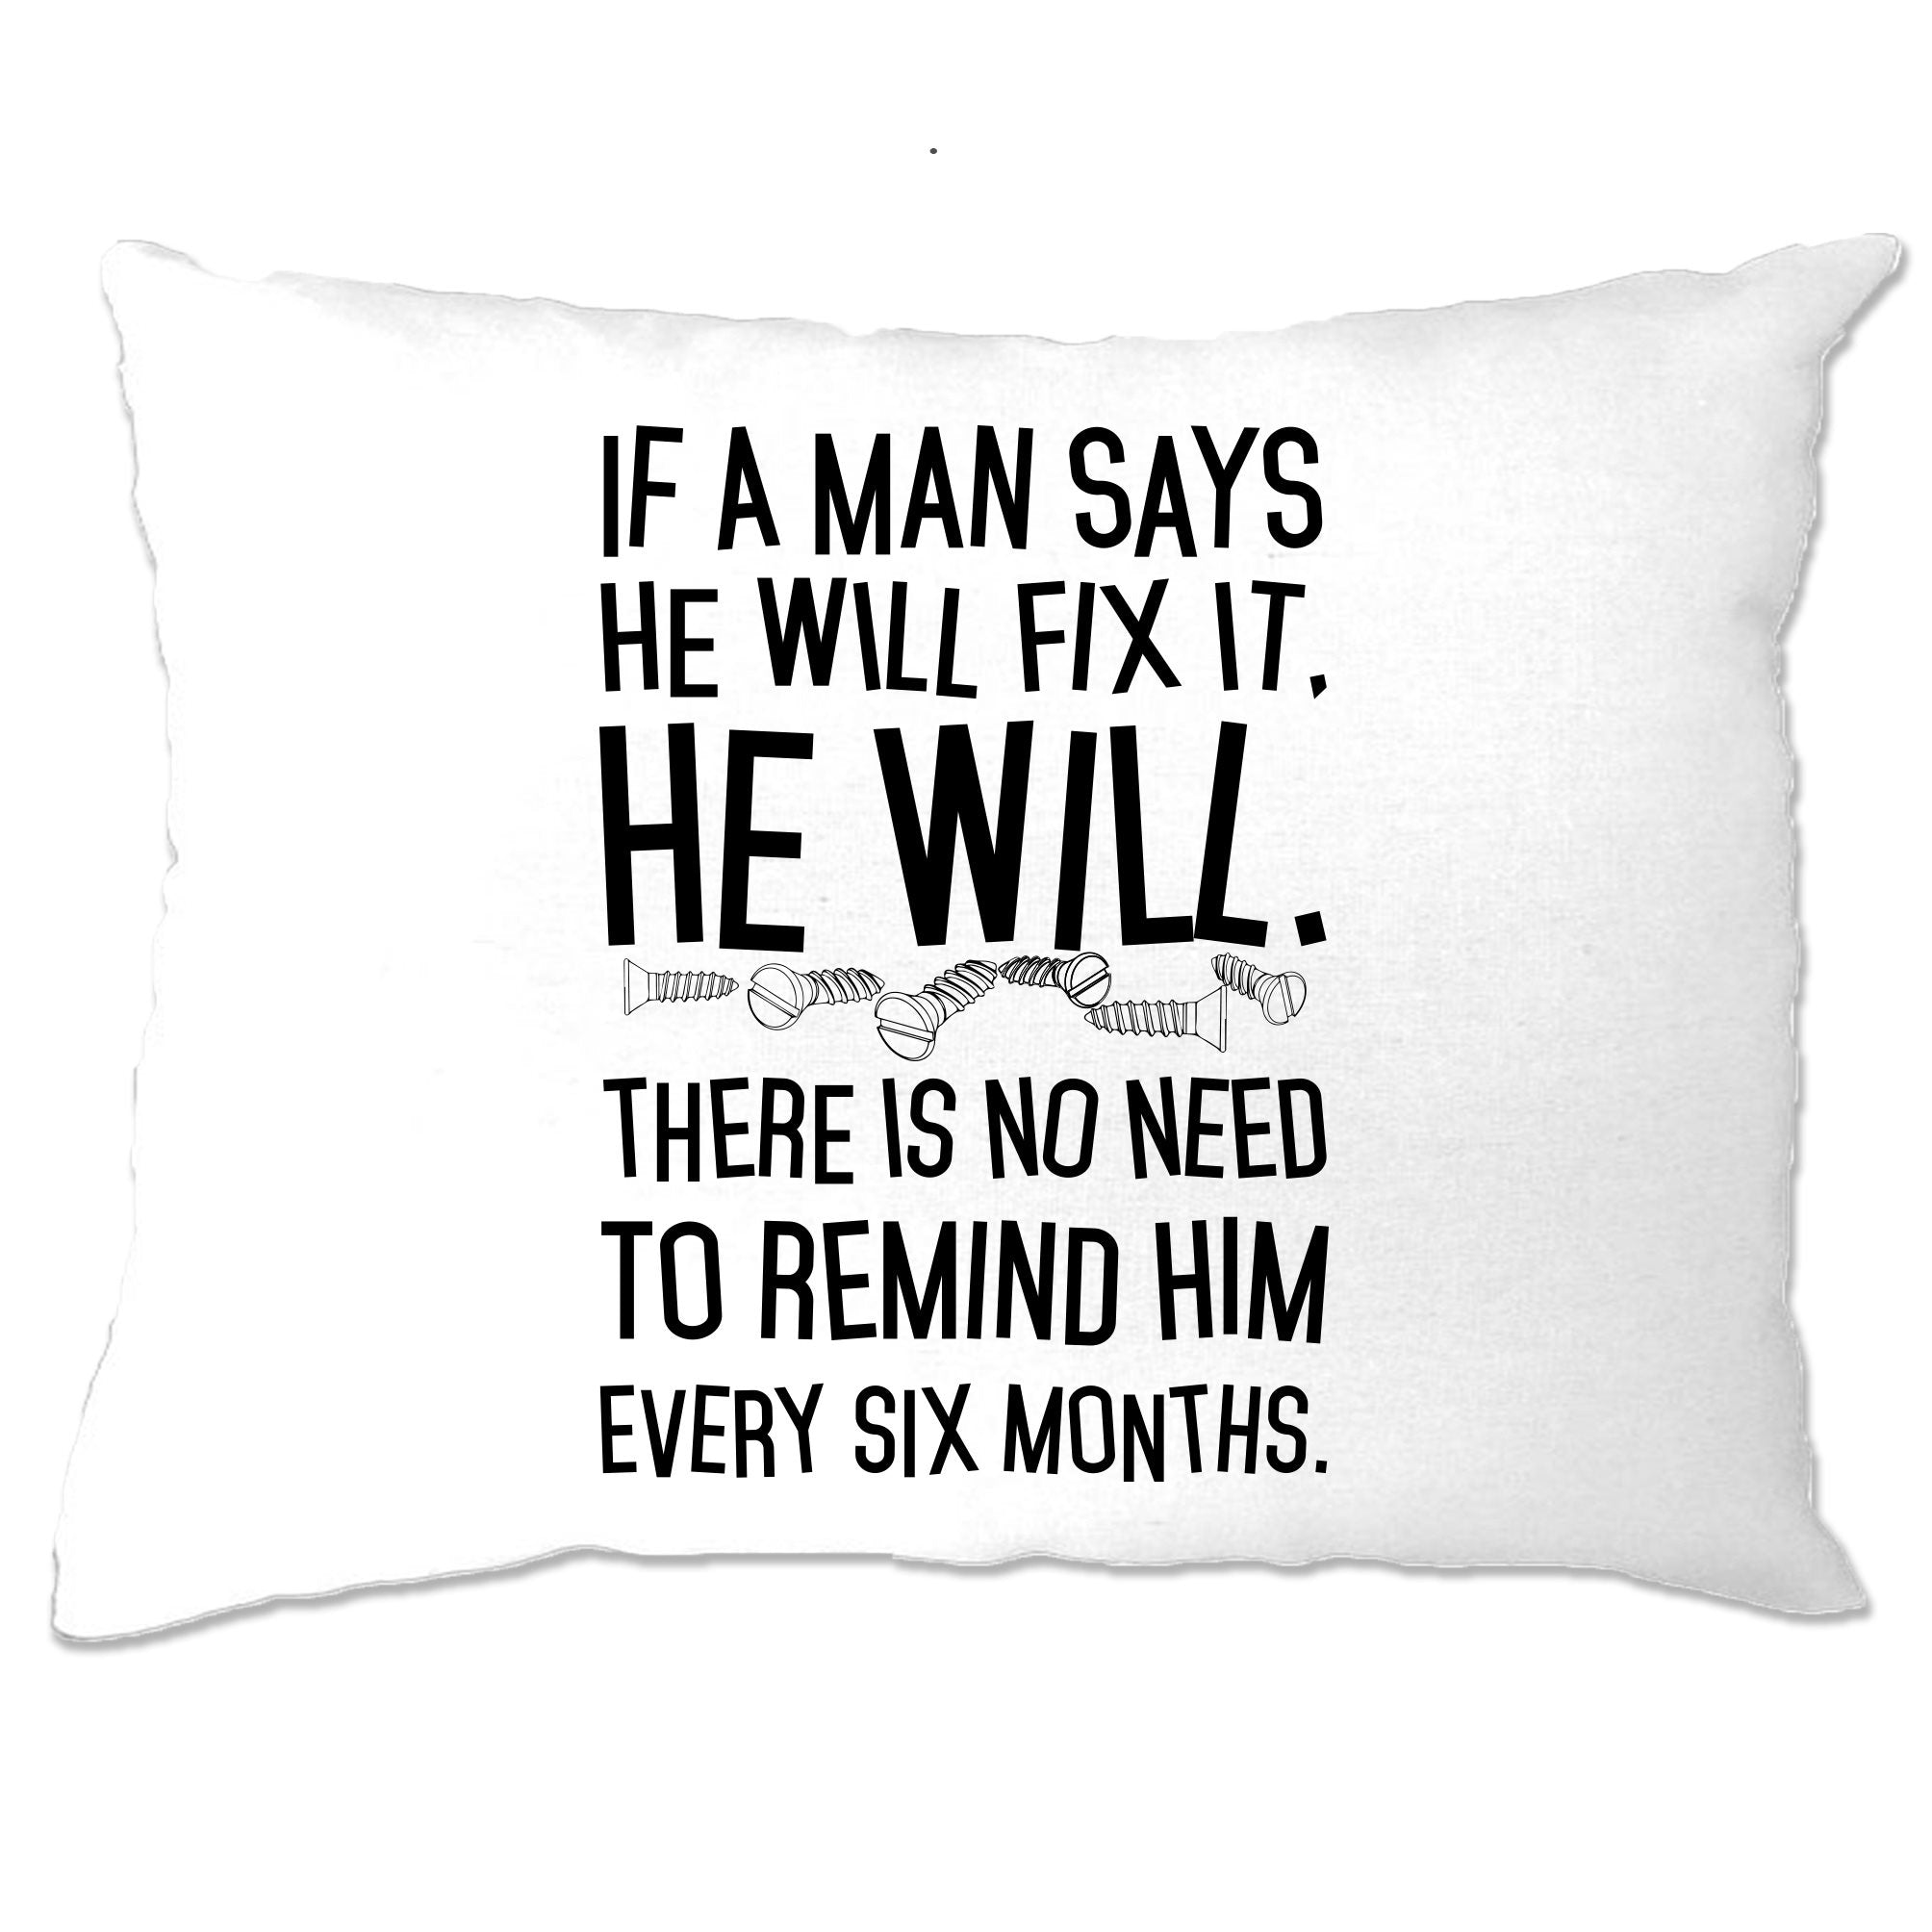 Novelty Pillow Case If A Man Says He'll Fix It He Will